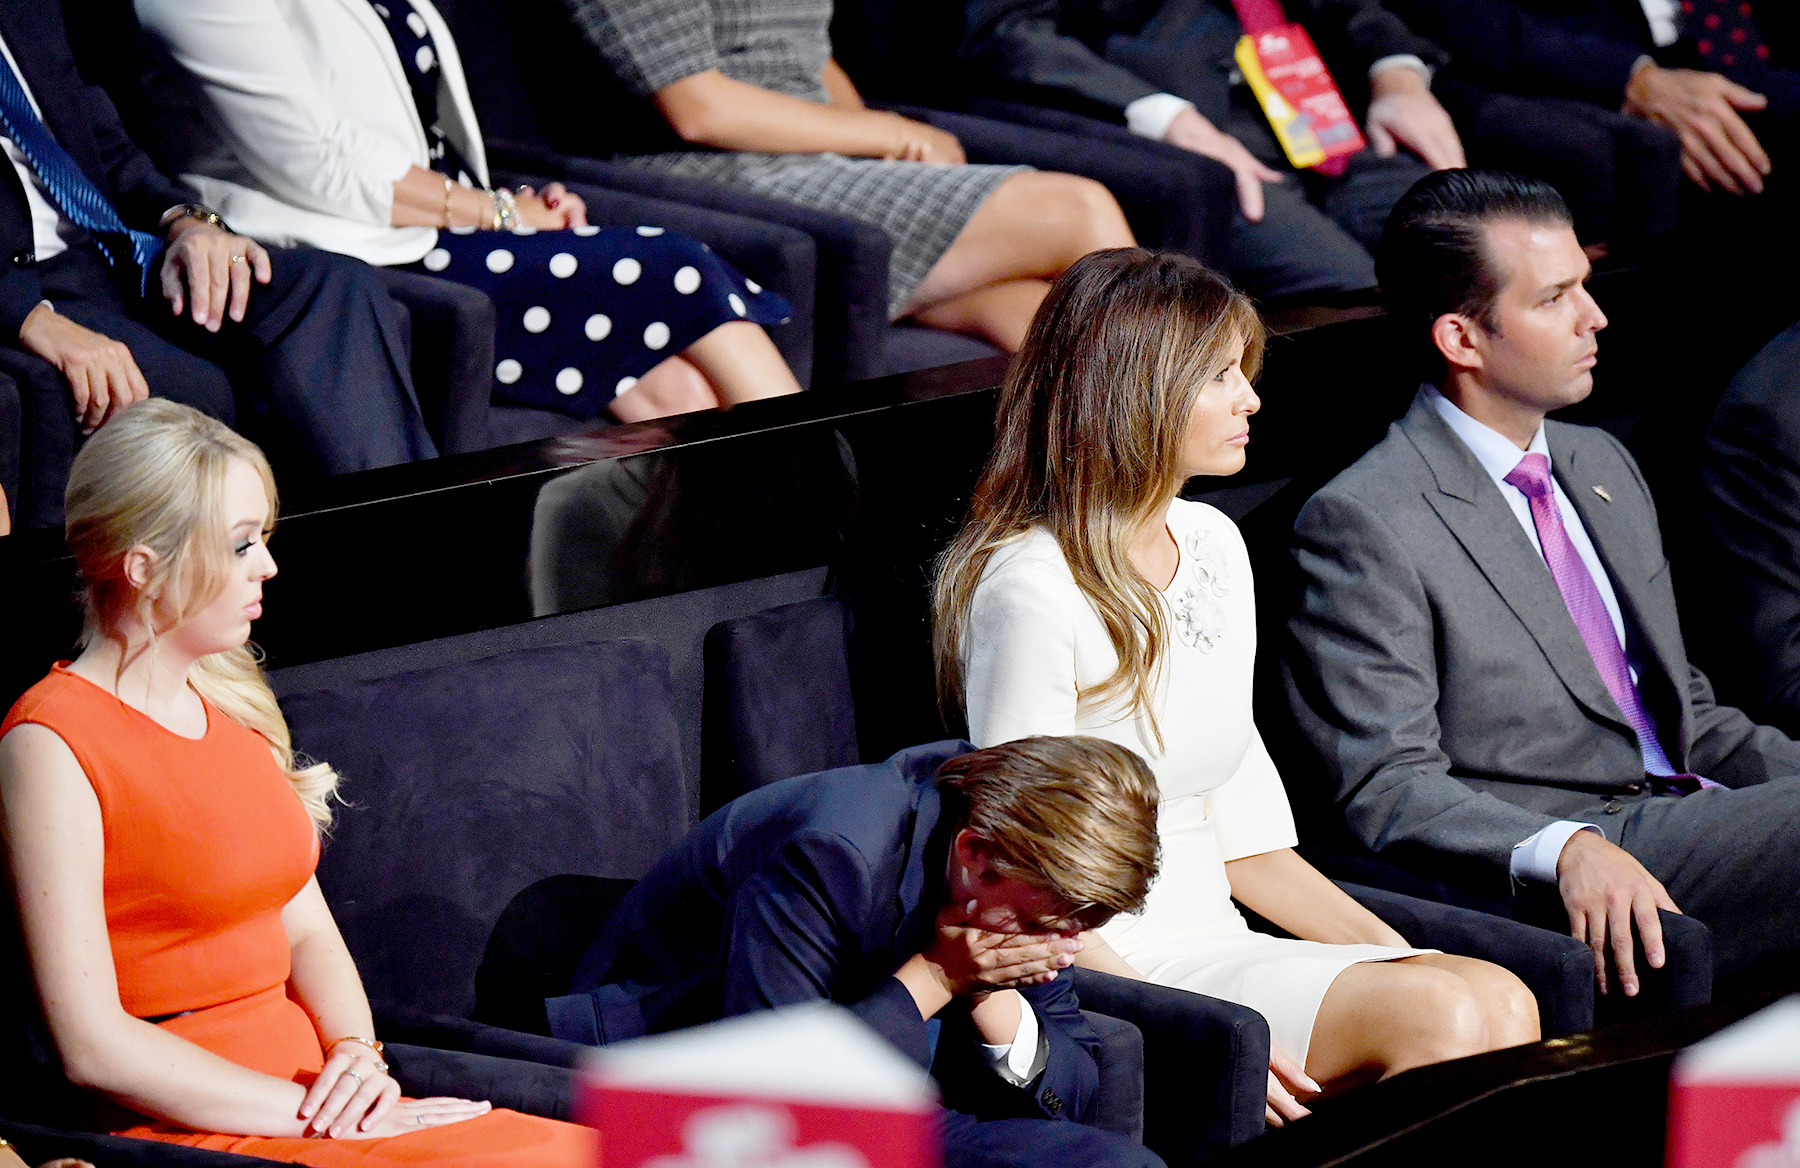 Tiffany Trump, Barron Trump, Melania Trump and Donald Trump Jr. listen to Republican presidential candidate Donald Trump deliver his speech on the fourth day of the Republican National Convention on July 21, 2016 at the Quicken Loans Arena in Cleveland, Ohio.